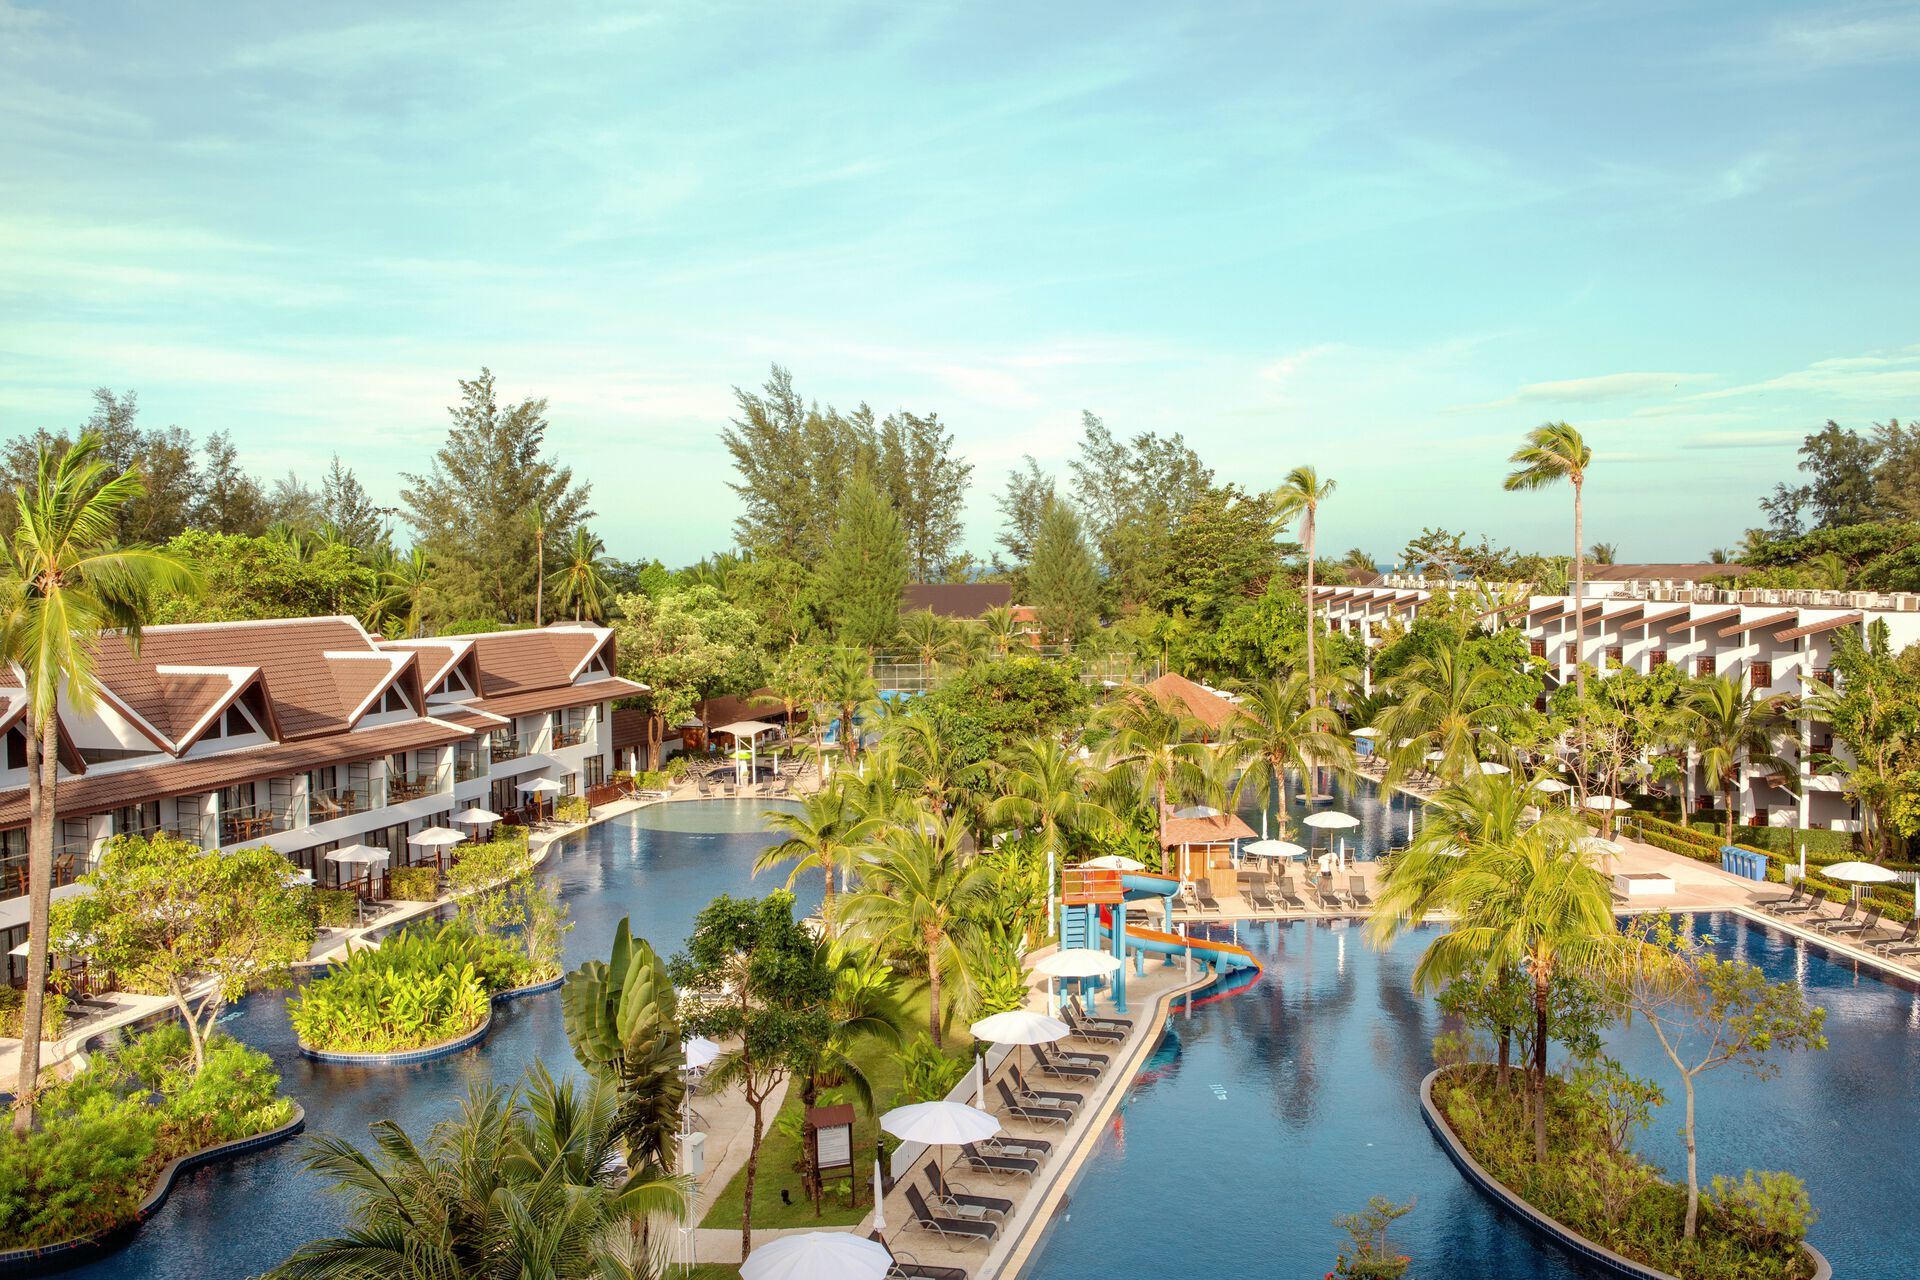 Hôtel Sunwing Resort Kamala Beach 4*